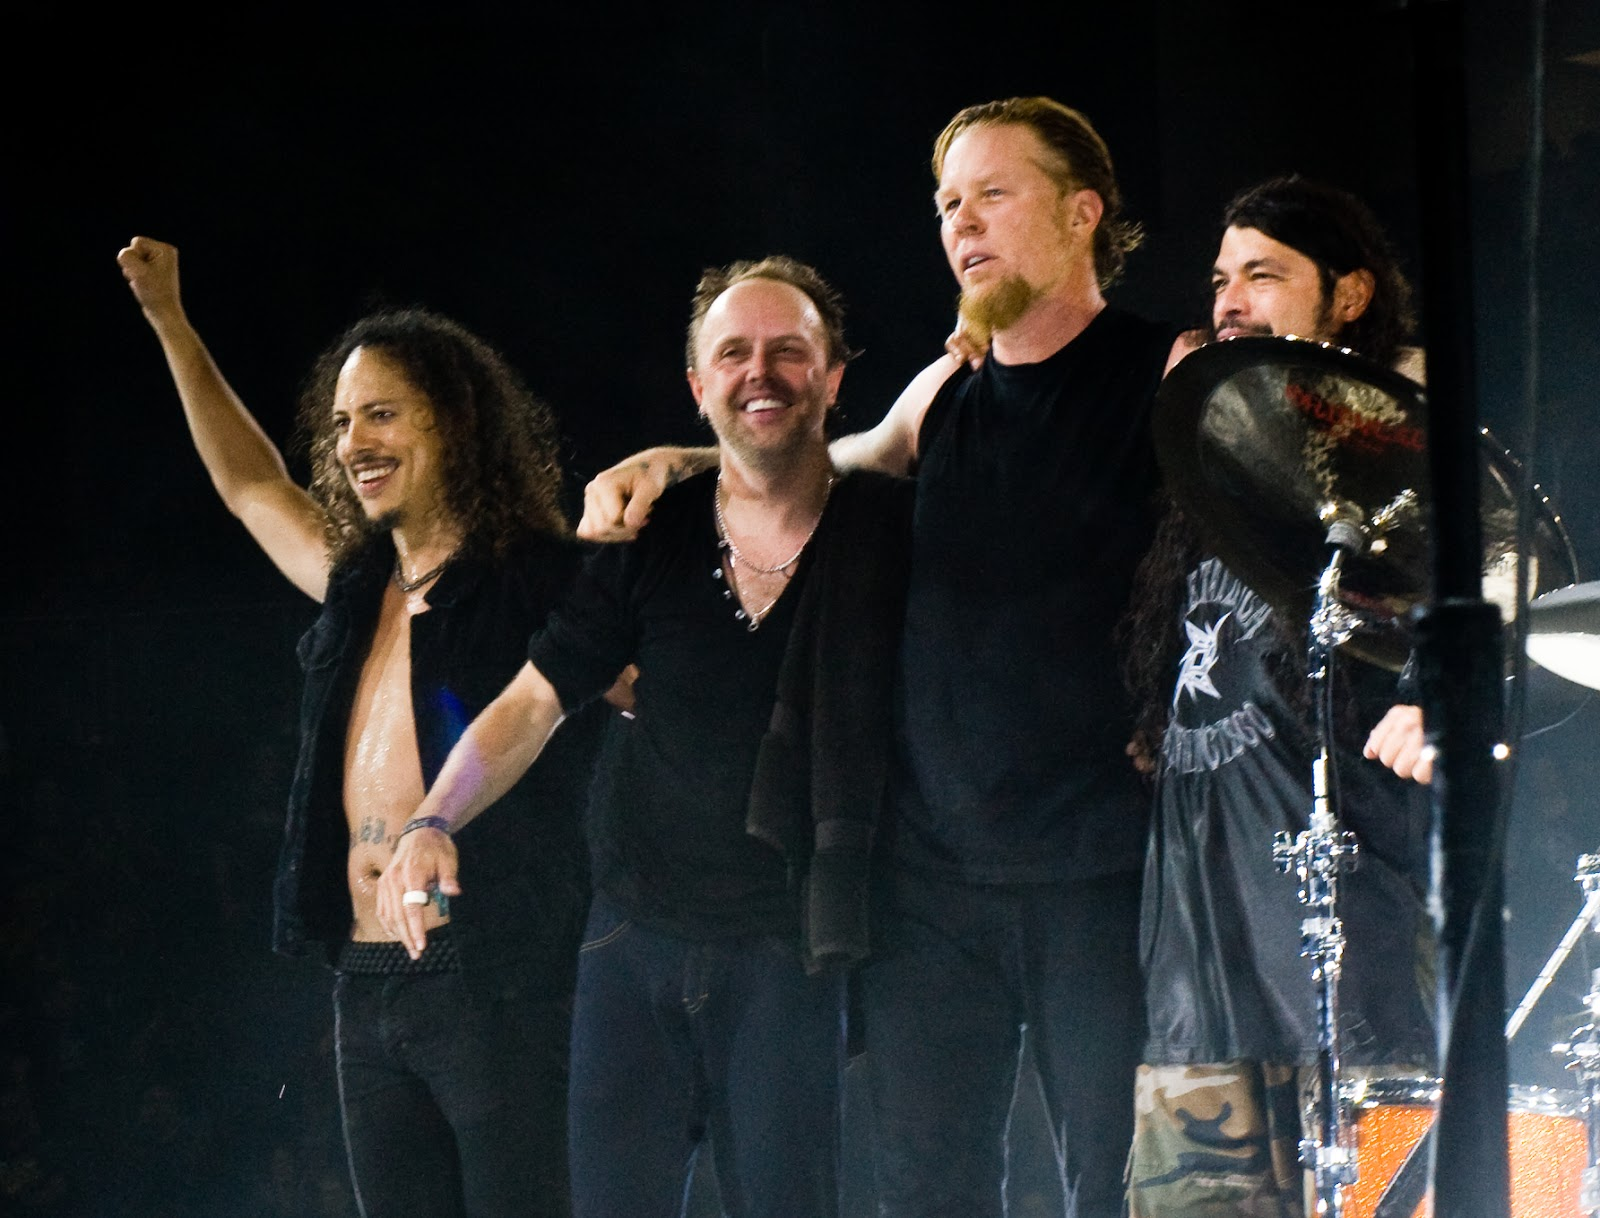 Rock 'N Roll Insight: Why Doesn't Metallica Play More